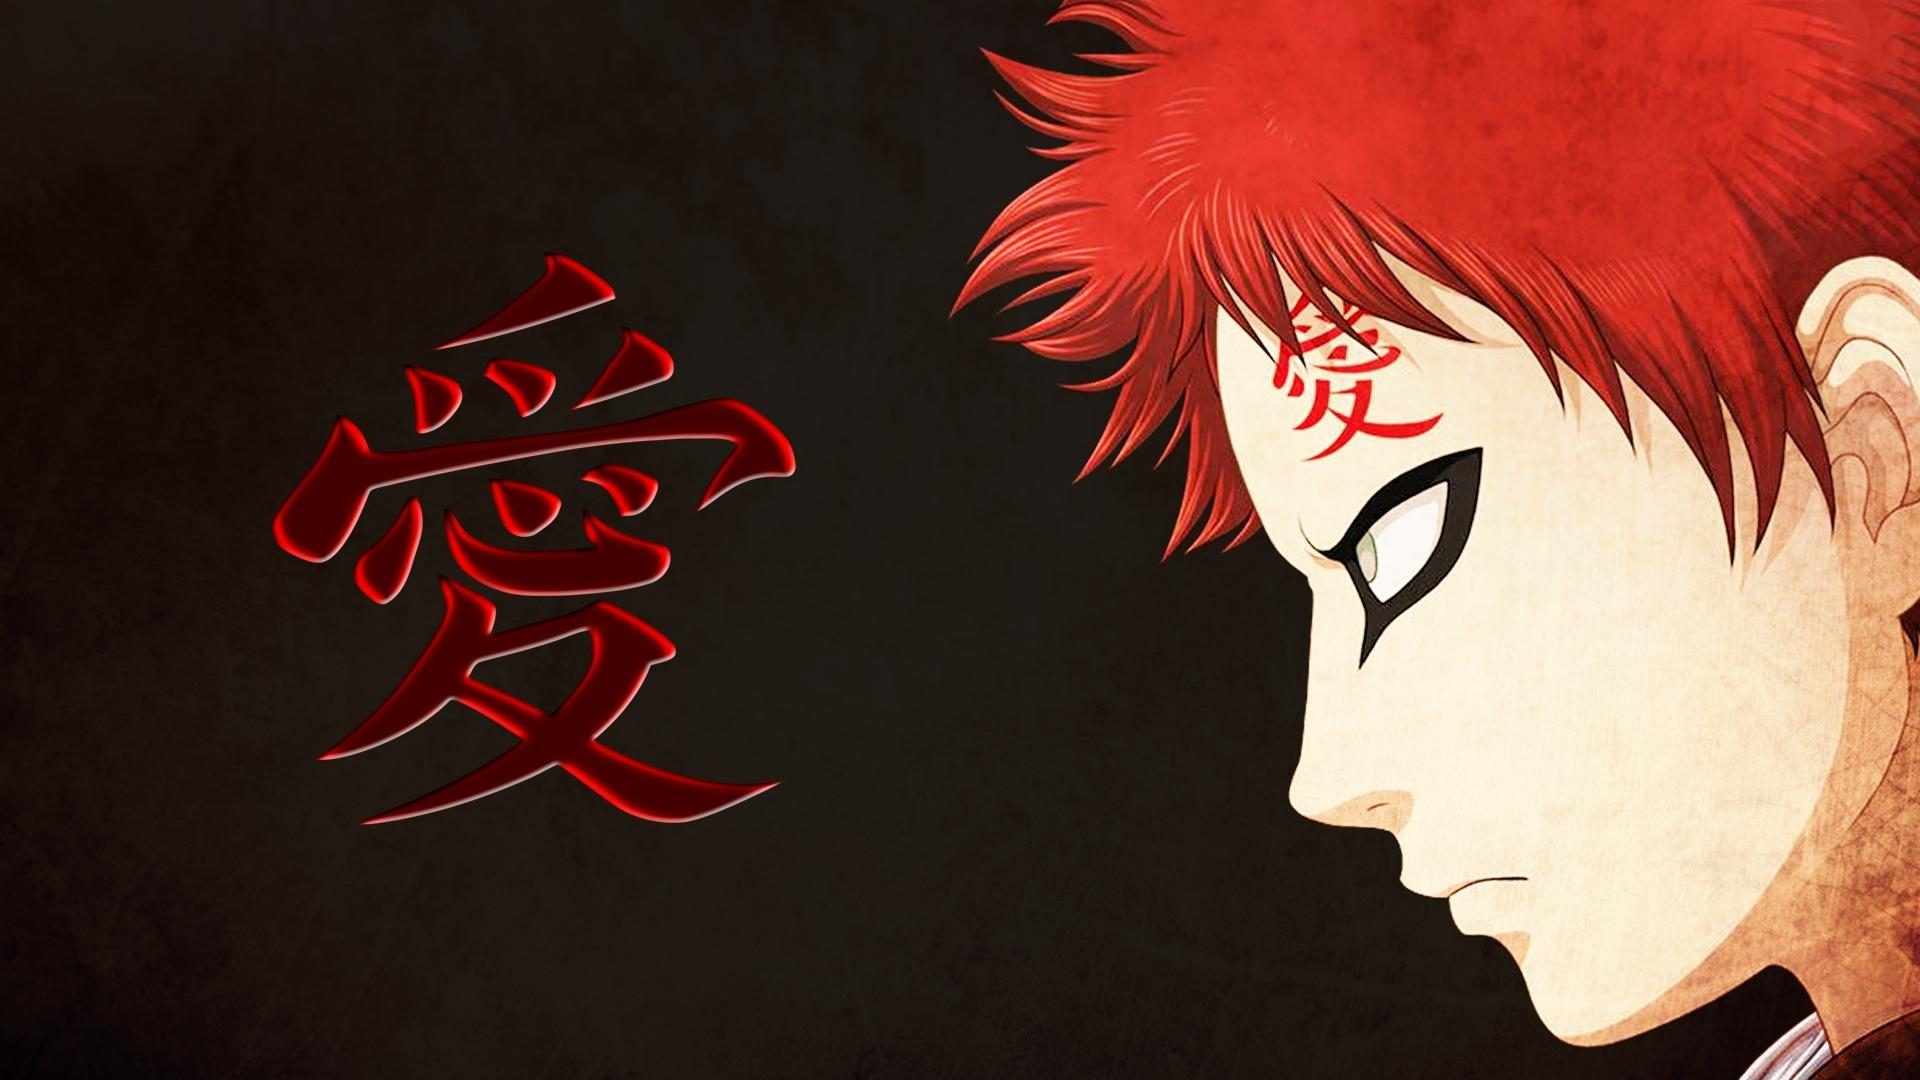 1920x1080 Naruto Gaara Wallpaper